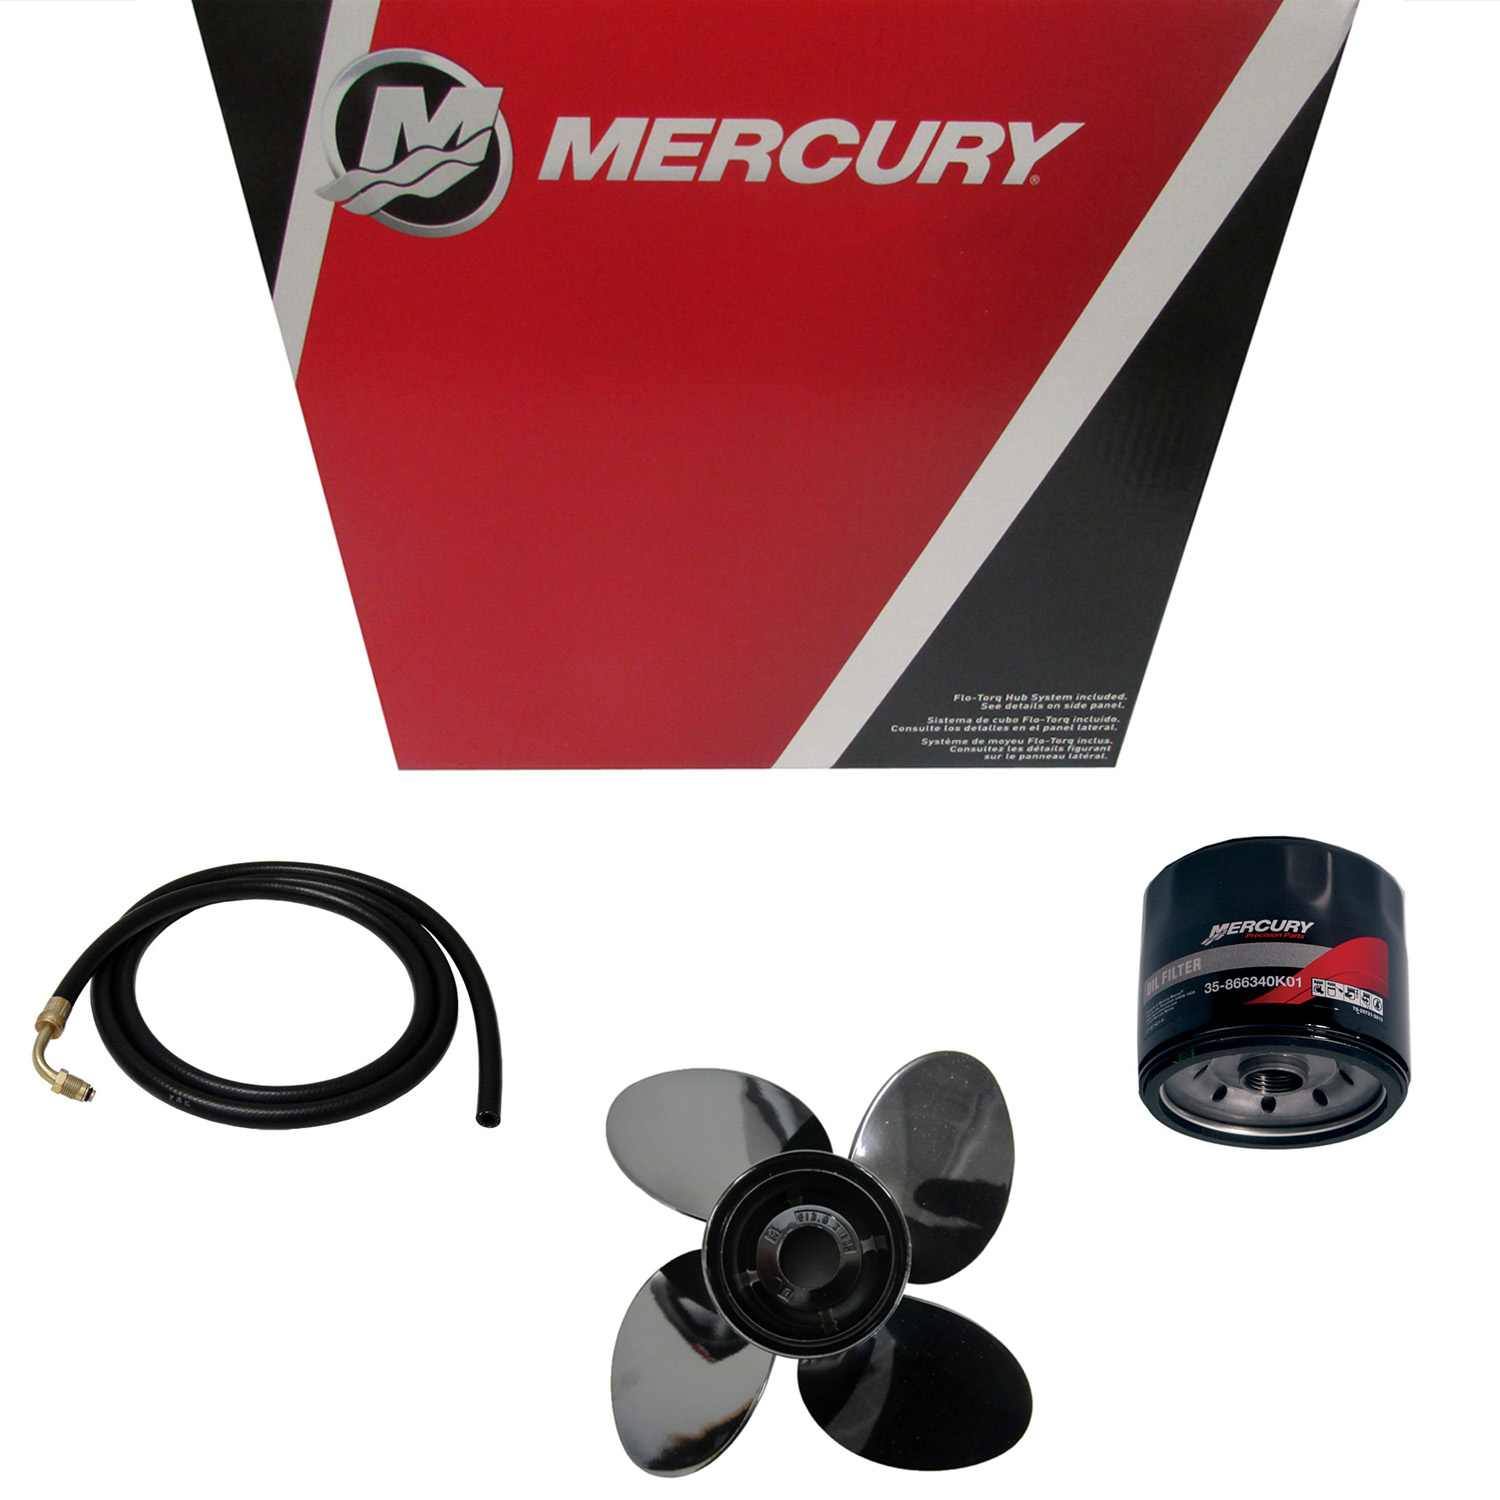 Mercury Marine Mercruiser New Oem Diagram Wiring 90 843226 Ebay Image Is Loading